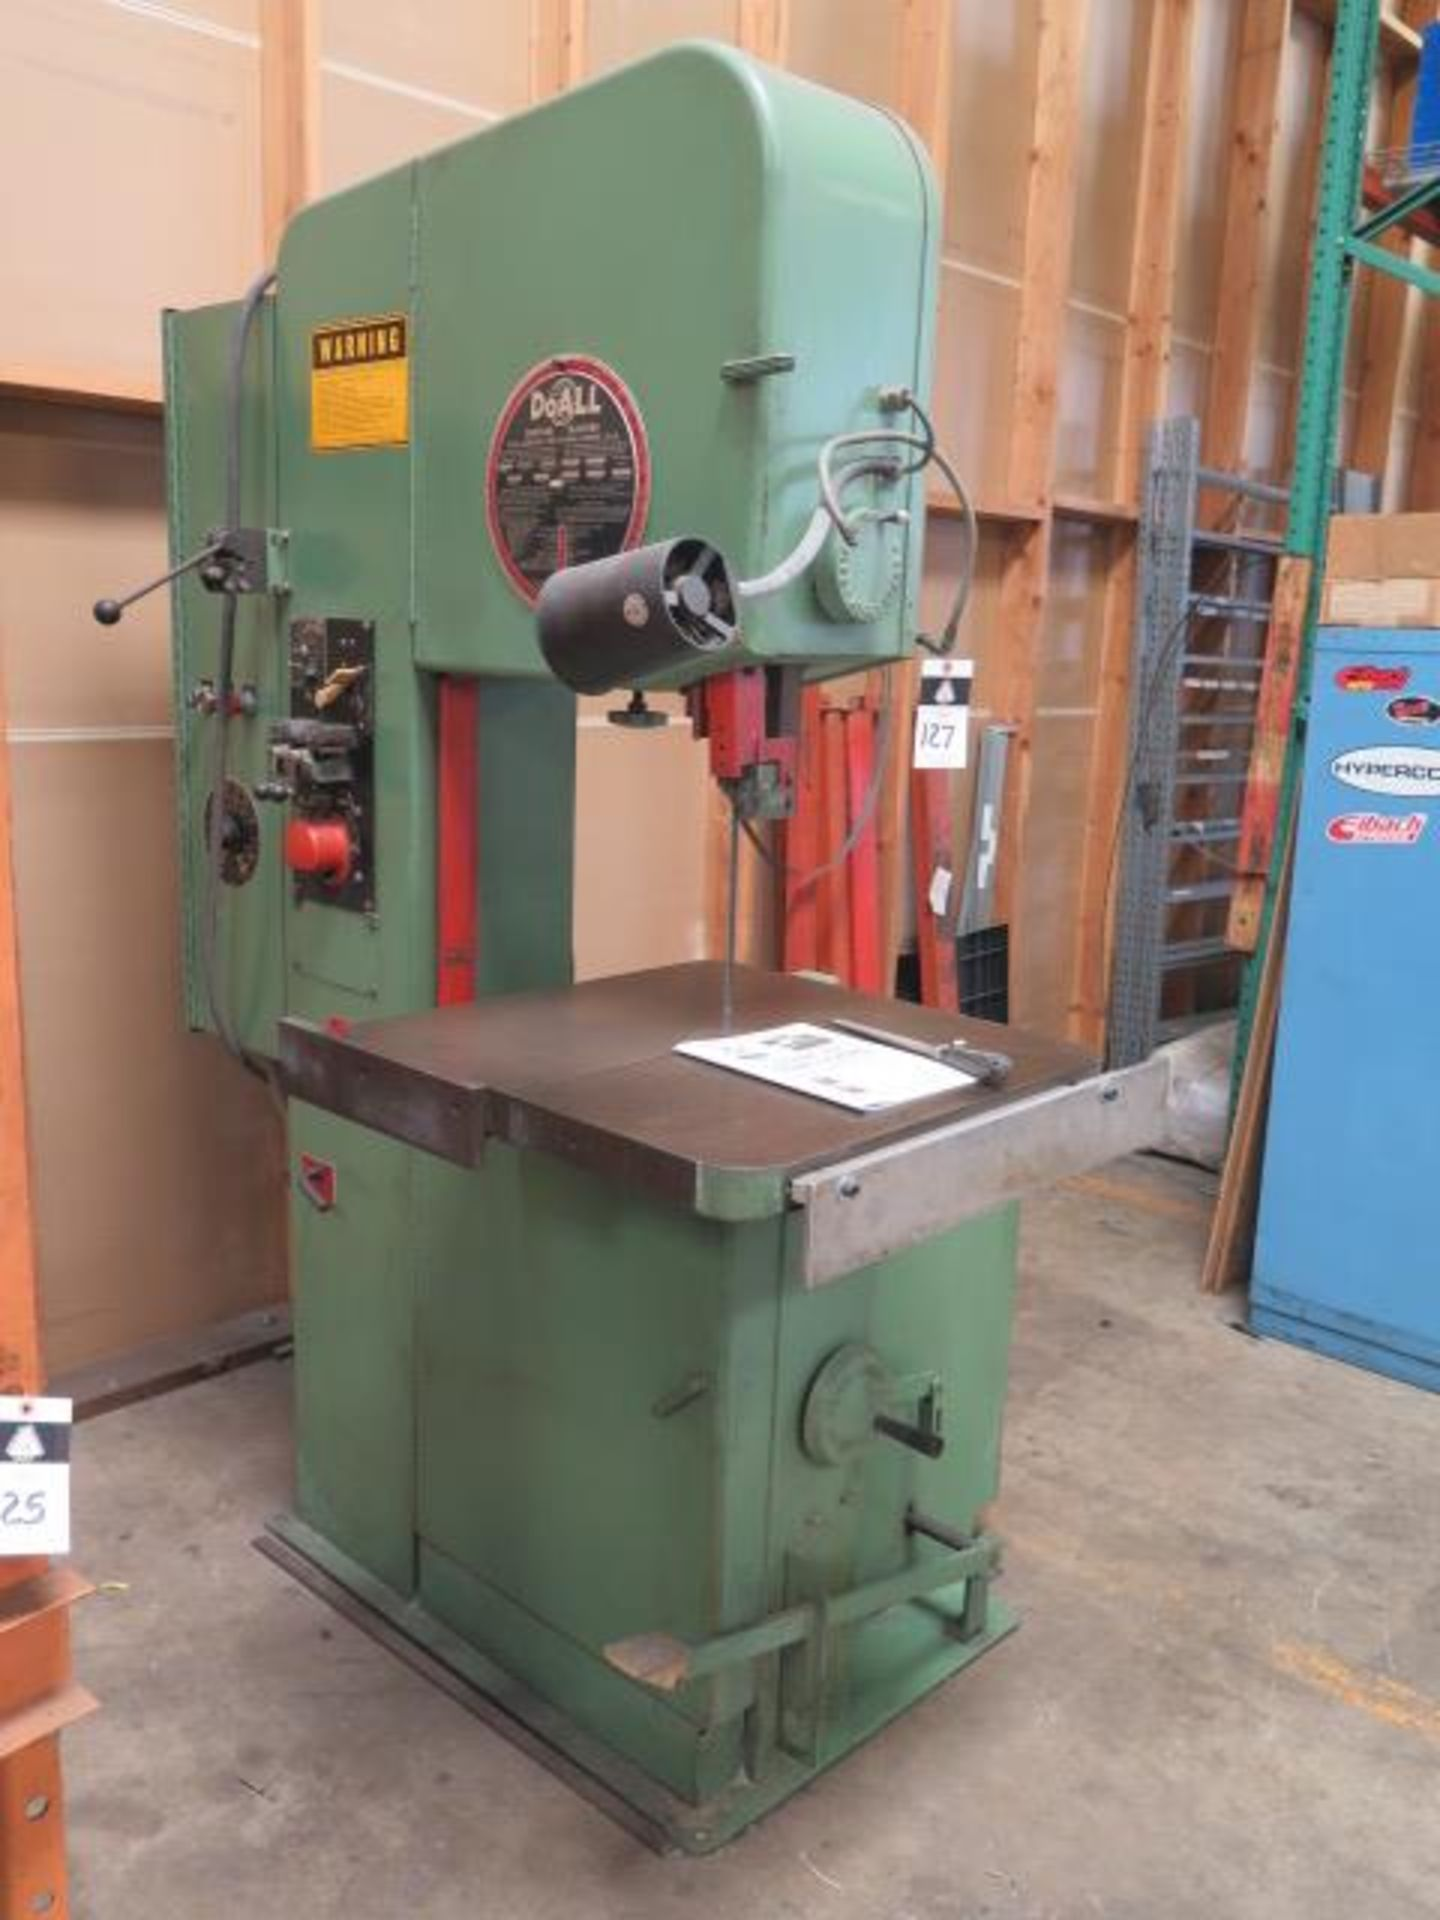 "DoAll 2013-10 20"" Vertical Band Saw s/n 377-861259 w/ Welder, 0-5200 RPM 26"" x 26"" Table, SOLD AS IS"